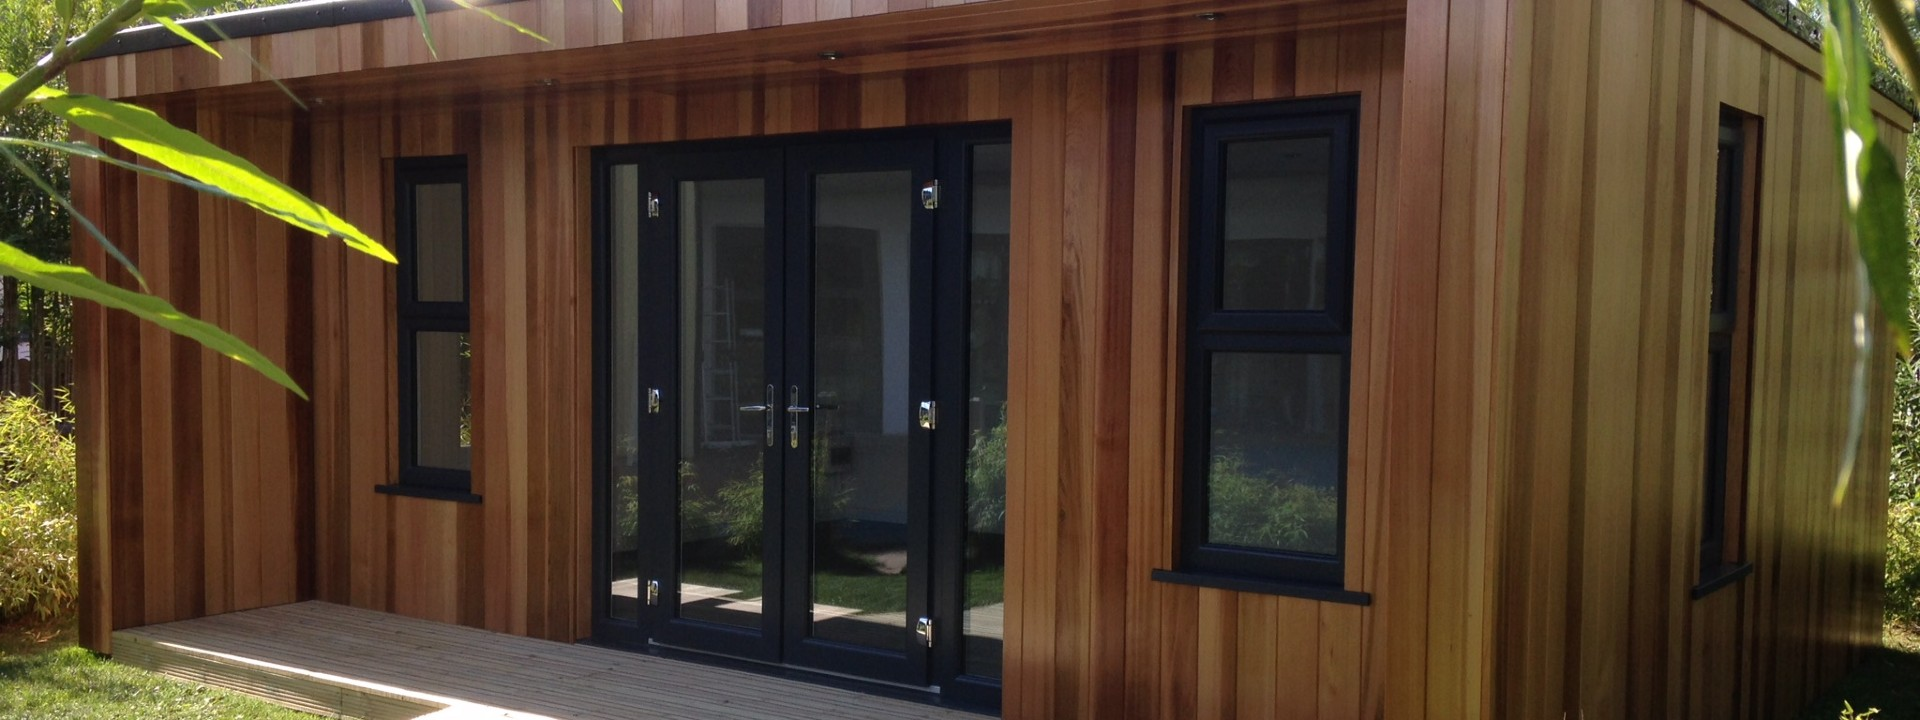 Beautiful Garden Rooms, Studios, Classrooms and Bespoke Garden Buildings